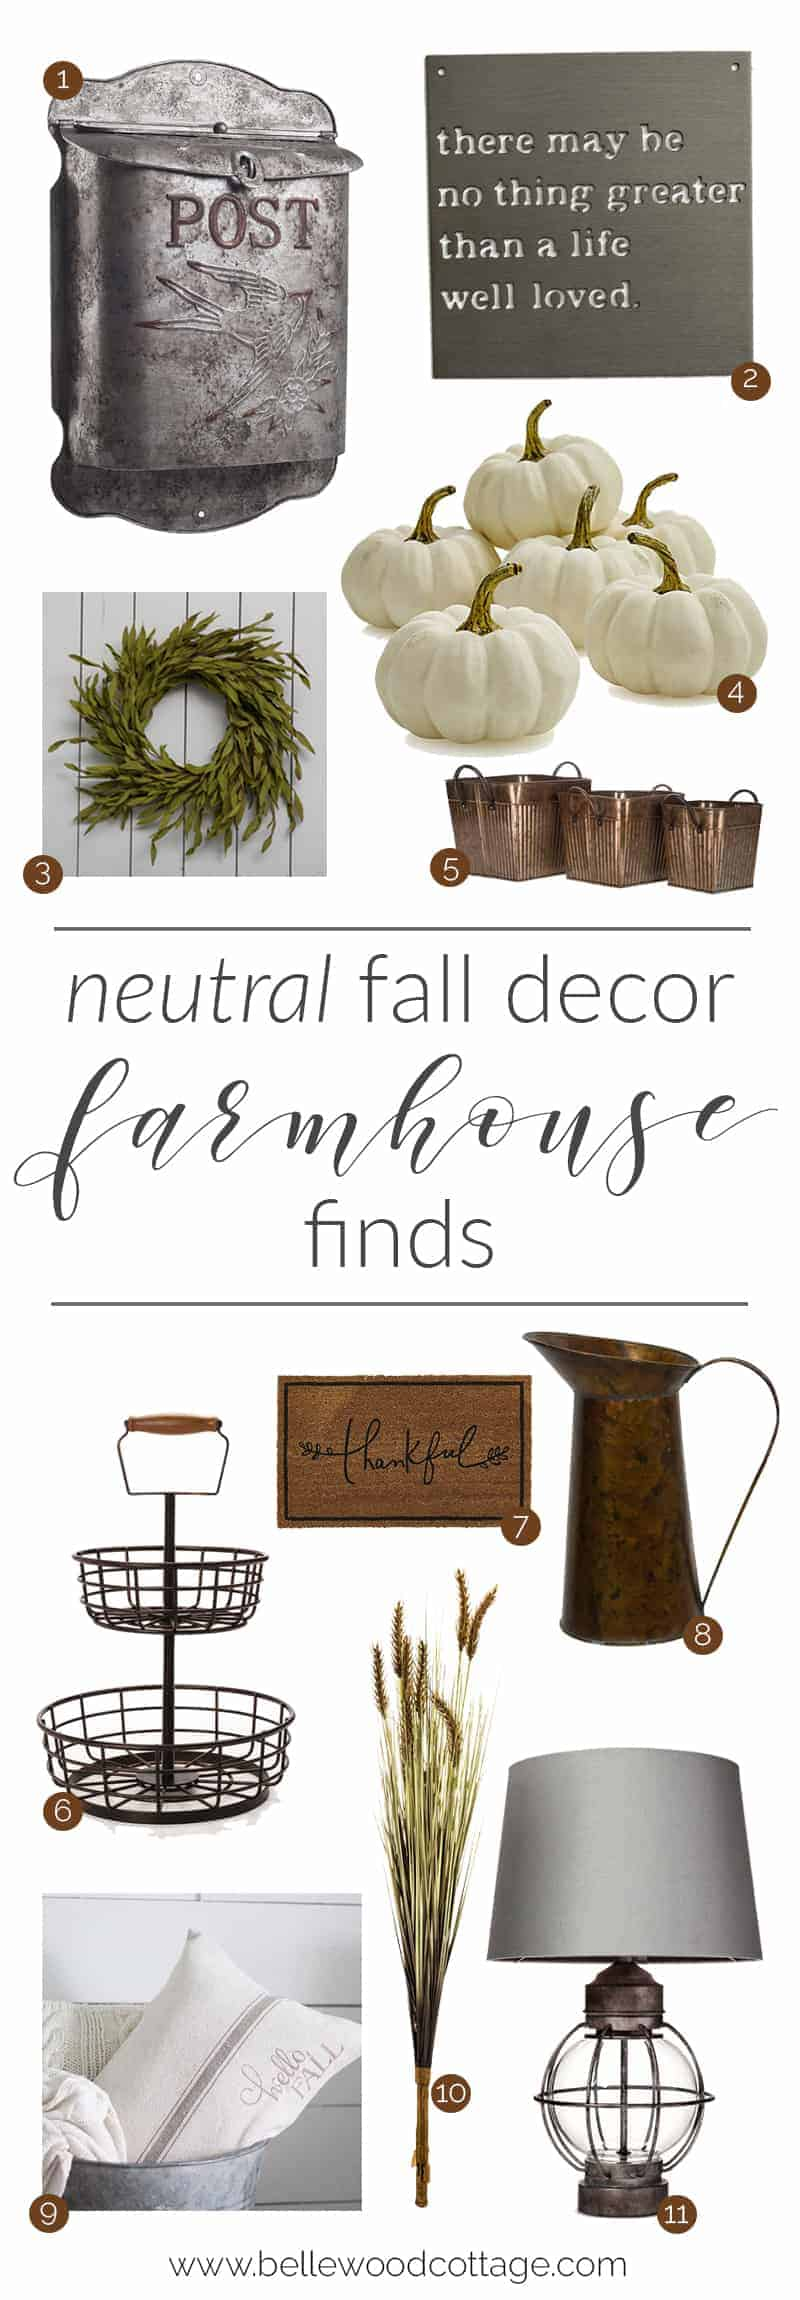 Neutral Fall Farmhouse Decor - Bellewood Cottage